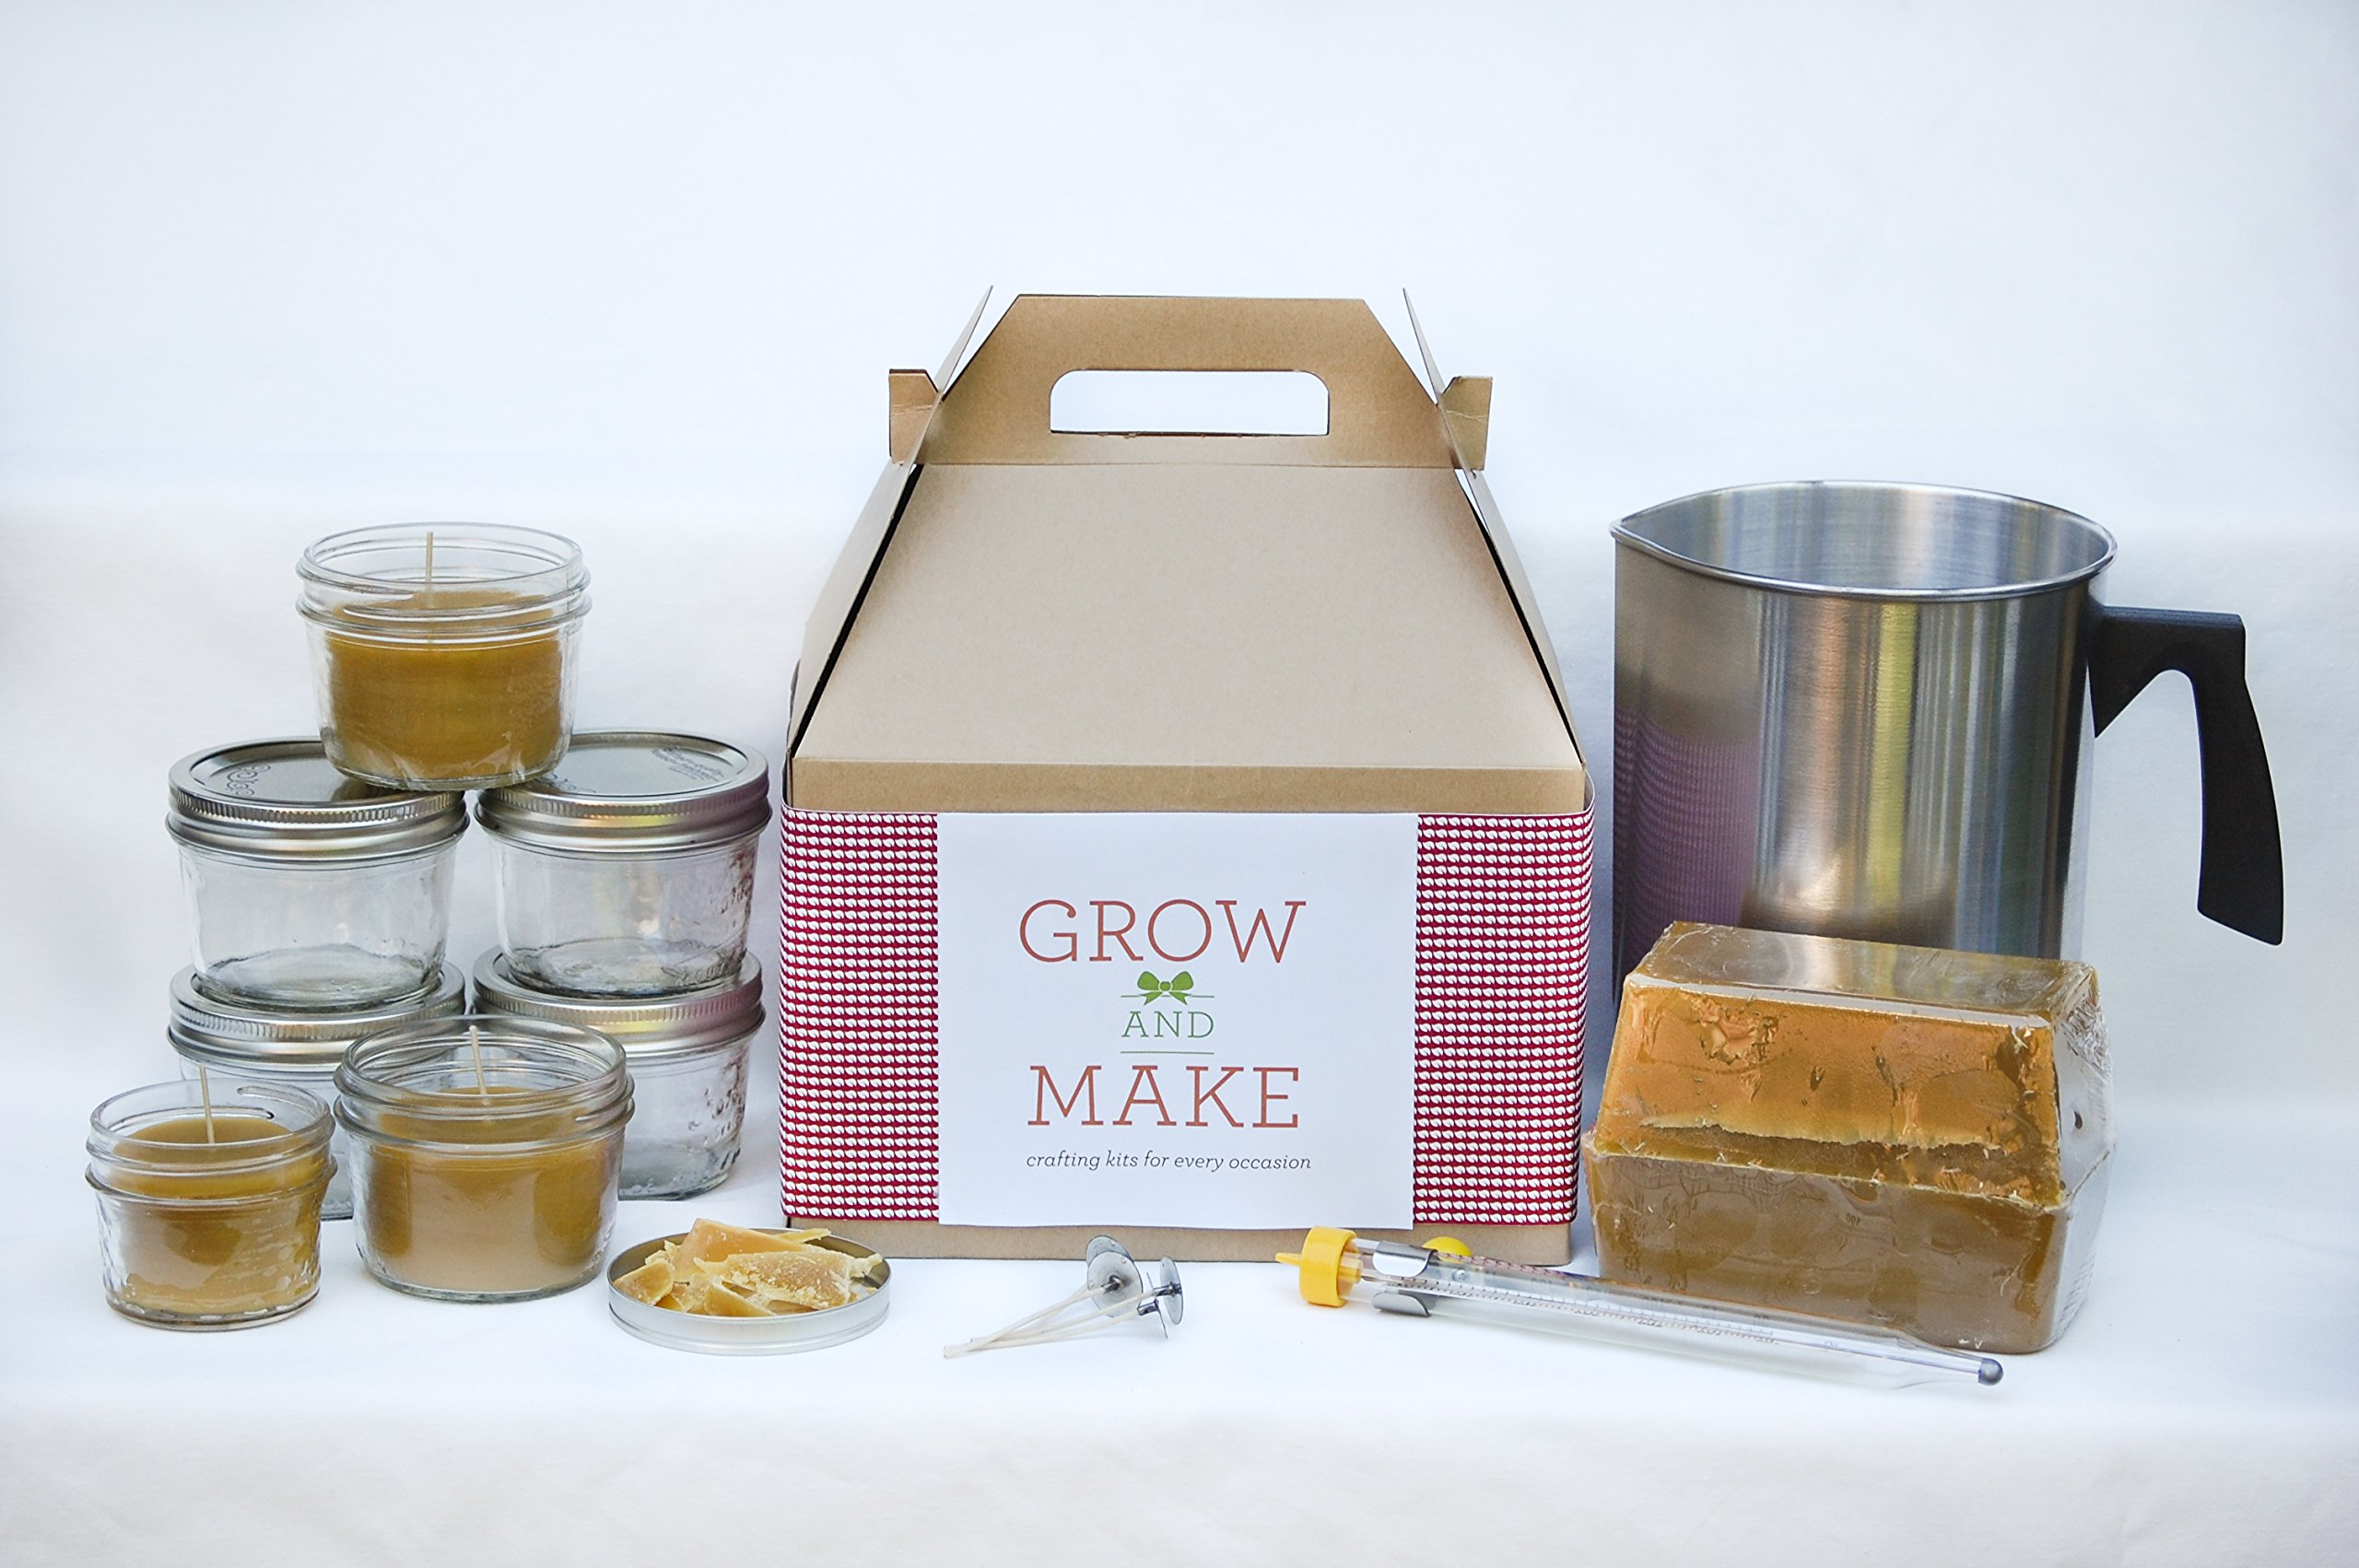 Beeswax Candle Making Kit with Small Mason Jars - Makes 12 Candles